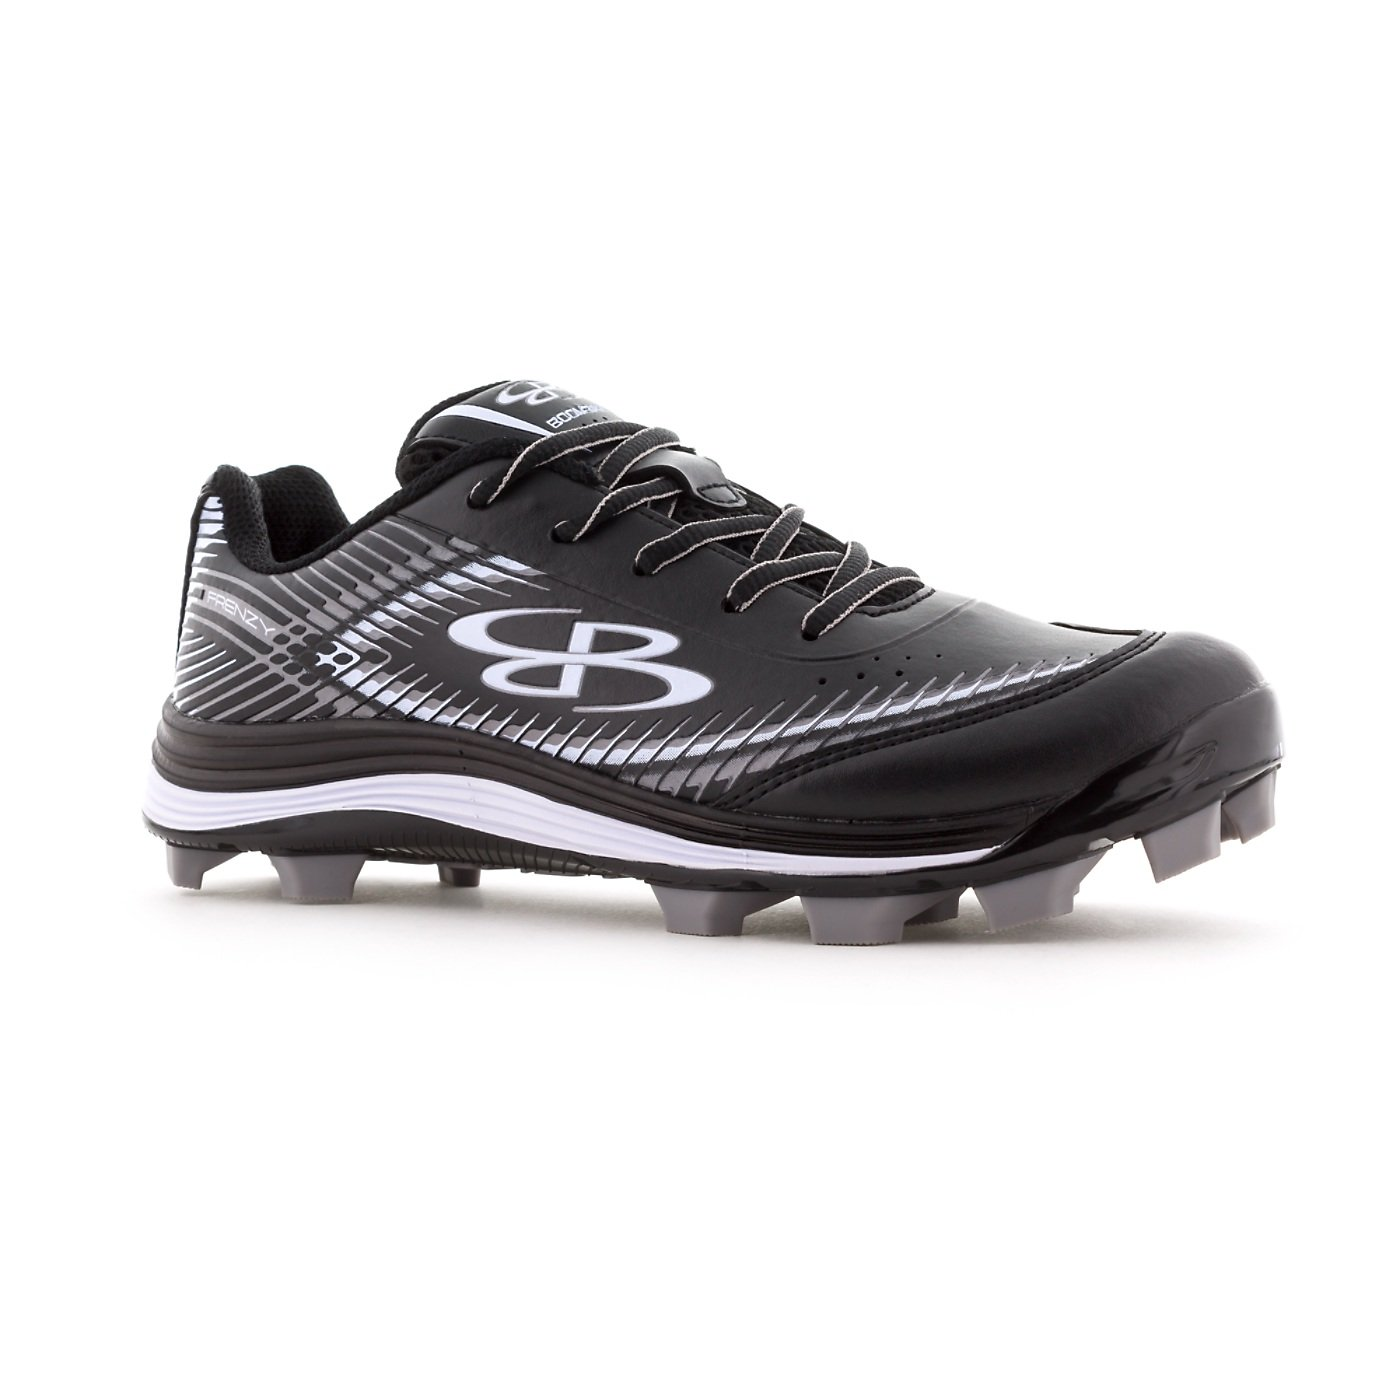 76f51a3c9 Amazon.com  Boombah Women s Frenzy Molded Cleats - 13 Color Options -  Multiple Sizes  Sports   Outdoors